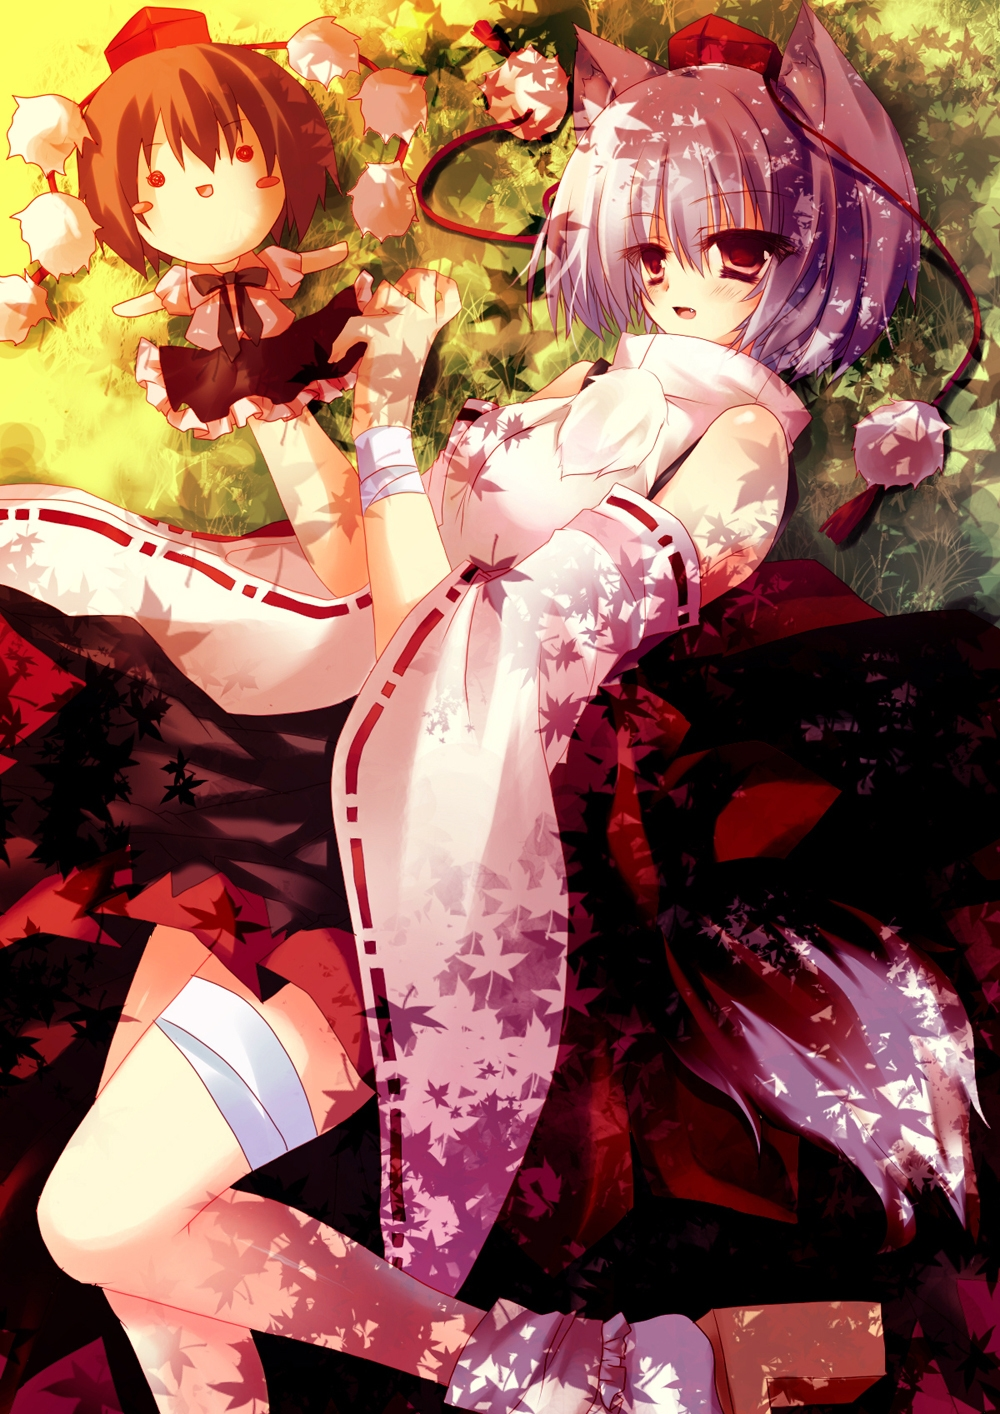 Inubashiri Momiji, Kiseri Momokoto, Shameimaru Aya, Touhou, Pixiv, White Socks, White Legwear, White Shirt, Fanart, Fanart From Pixiv, Maple Leaf, Okamimimi, Pom Pom (Clothes), Traditional Clothes, Field, Grass Field, Red Footwear, Short Hair, Two Girls, Female, Detached Sleeves, Black Hair, Frilled Skirt, Hat, Laying Down, Red Shirt, Shirt, Skirt, Sunbeam, White hair, Duo, Doll, Black Skirt, Black Ribbon, Albino, Zun, Frills, Grass, Japanese Clothes, Kemonomimi, Leaves, Long Sleeves, Ribbon, Shoes, Socks, Stuffed Character, Tail, Tokin Hat